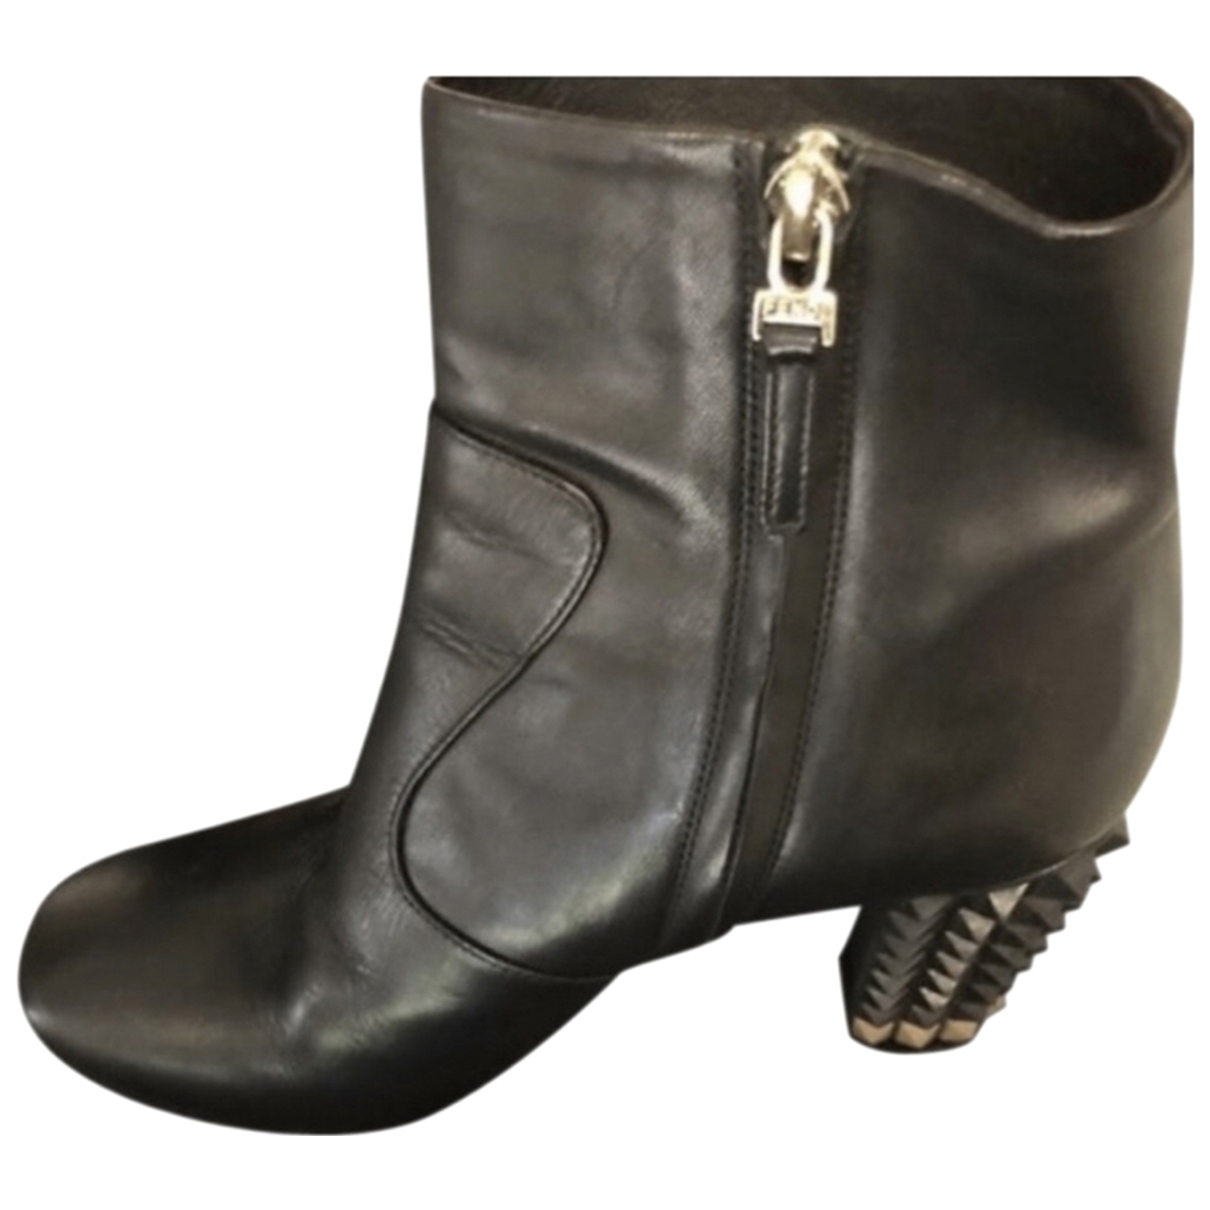 Fendi \N Black Leather Ankle boots for Women 36.5 EU